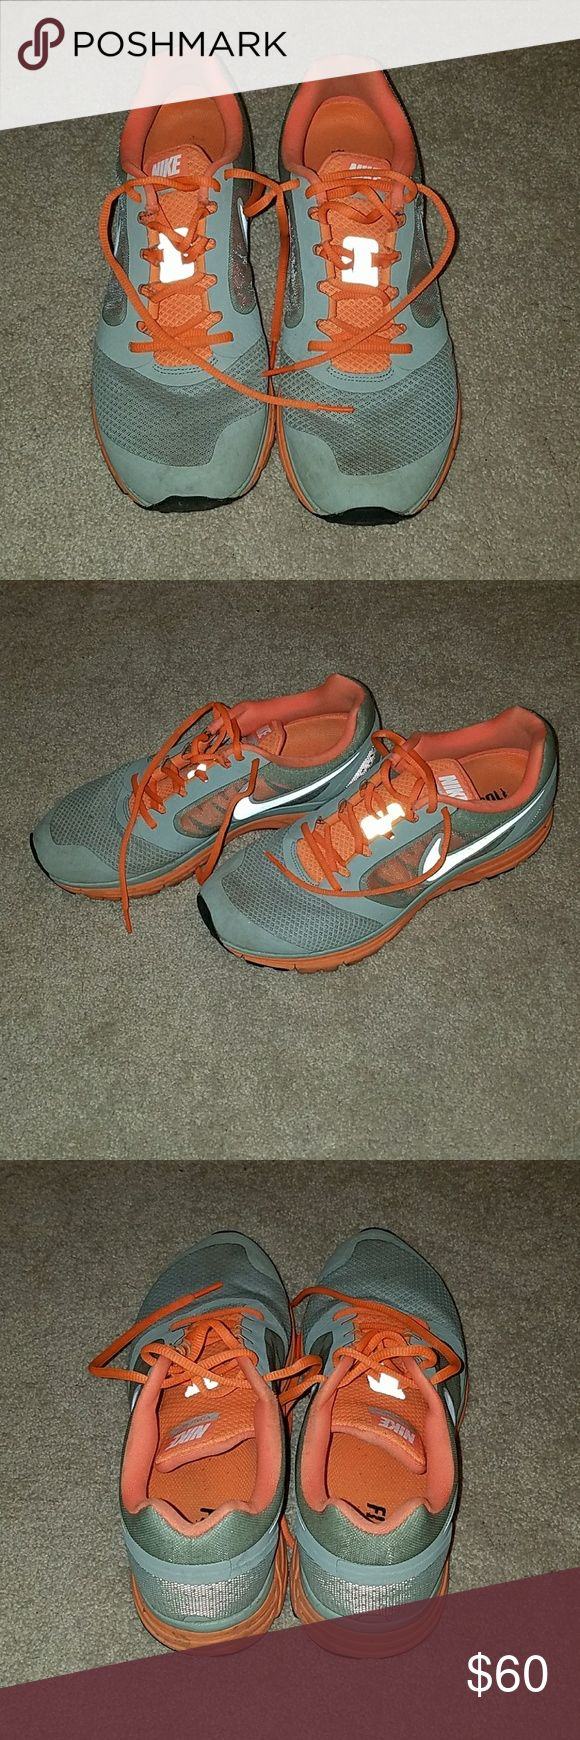 Nike Vomero 8 Sneakers Long distance running sneakers with great support and Nike+ compatible. Worn for a few races but still in amazing condition. Nike Shoes Athletic Shoes